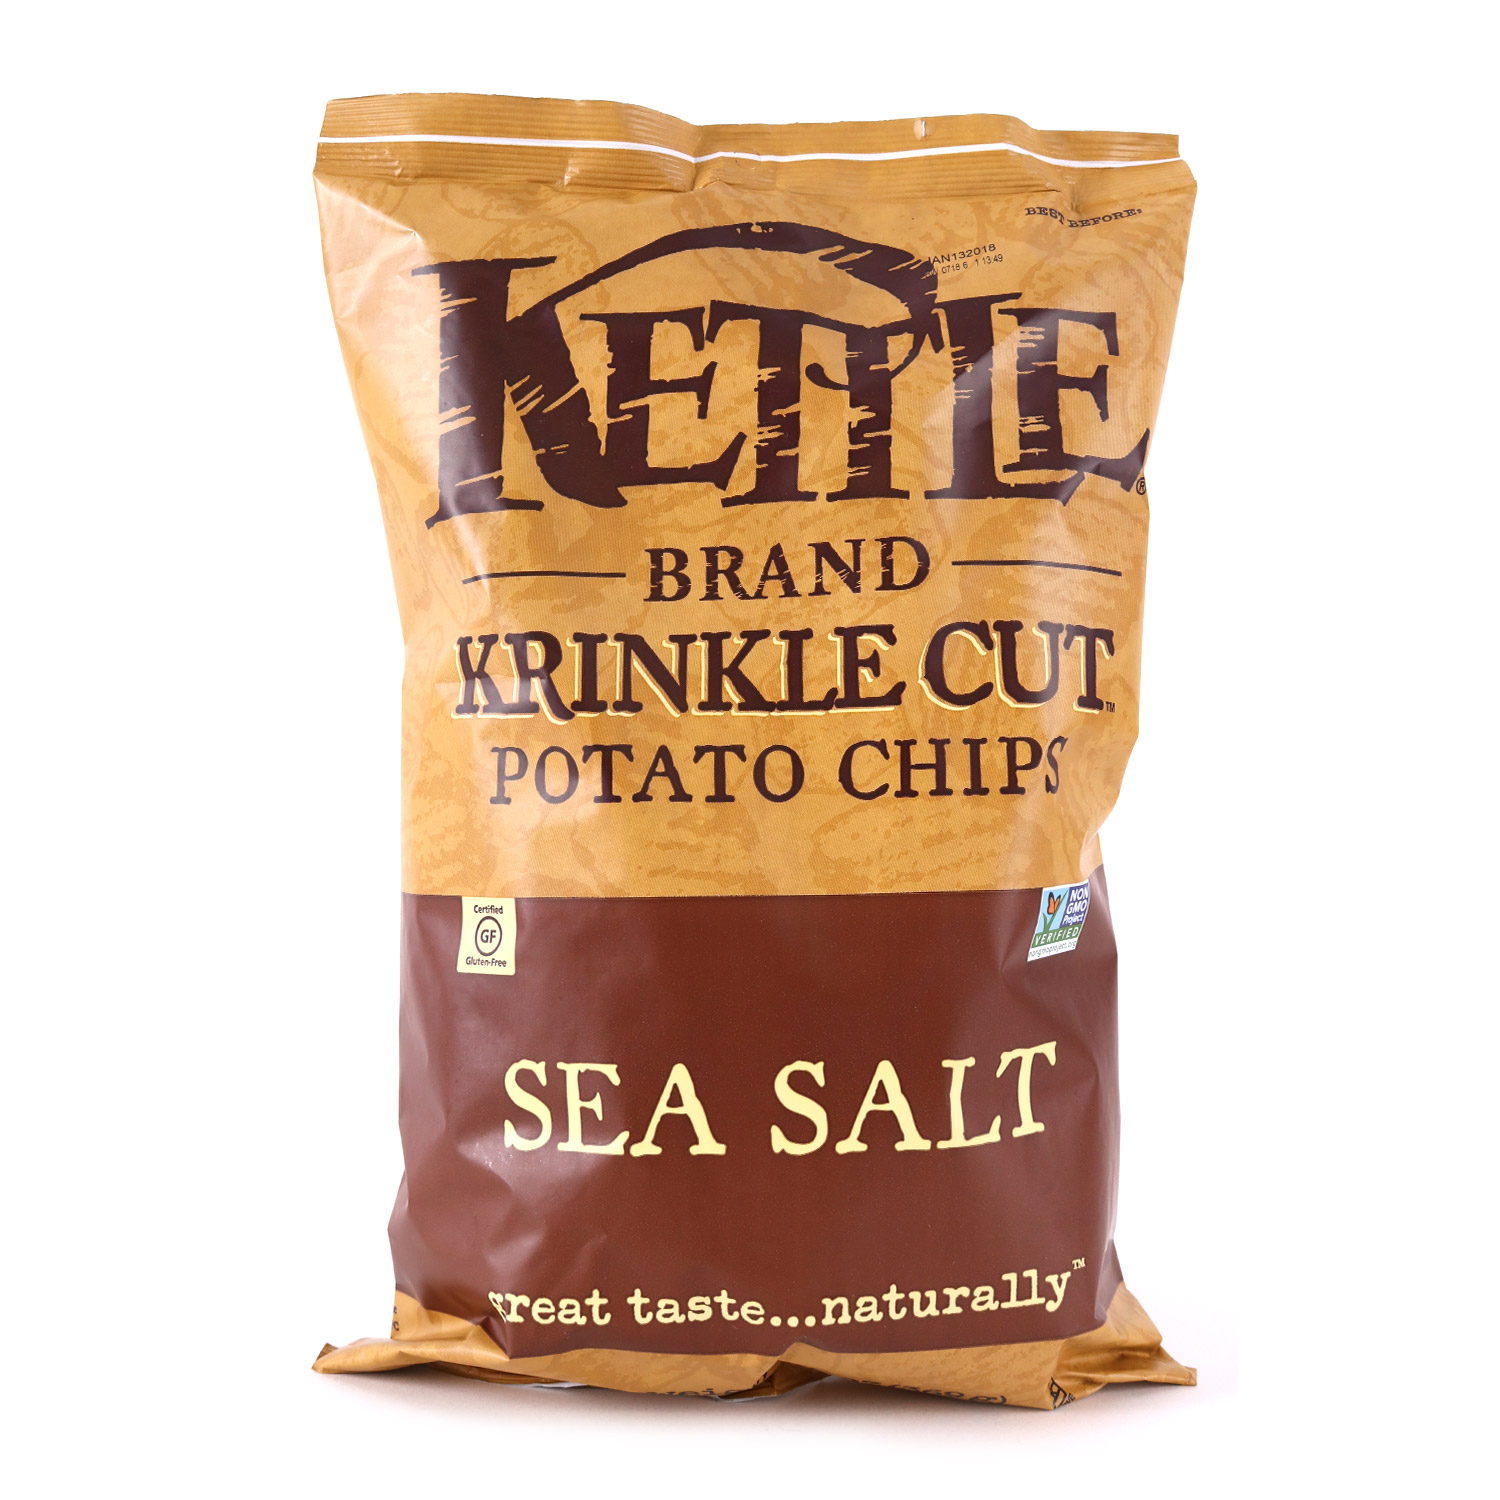 Krinkle Cut, Sea Salt